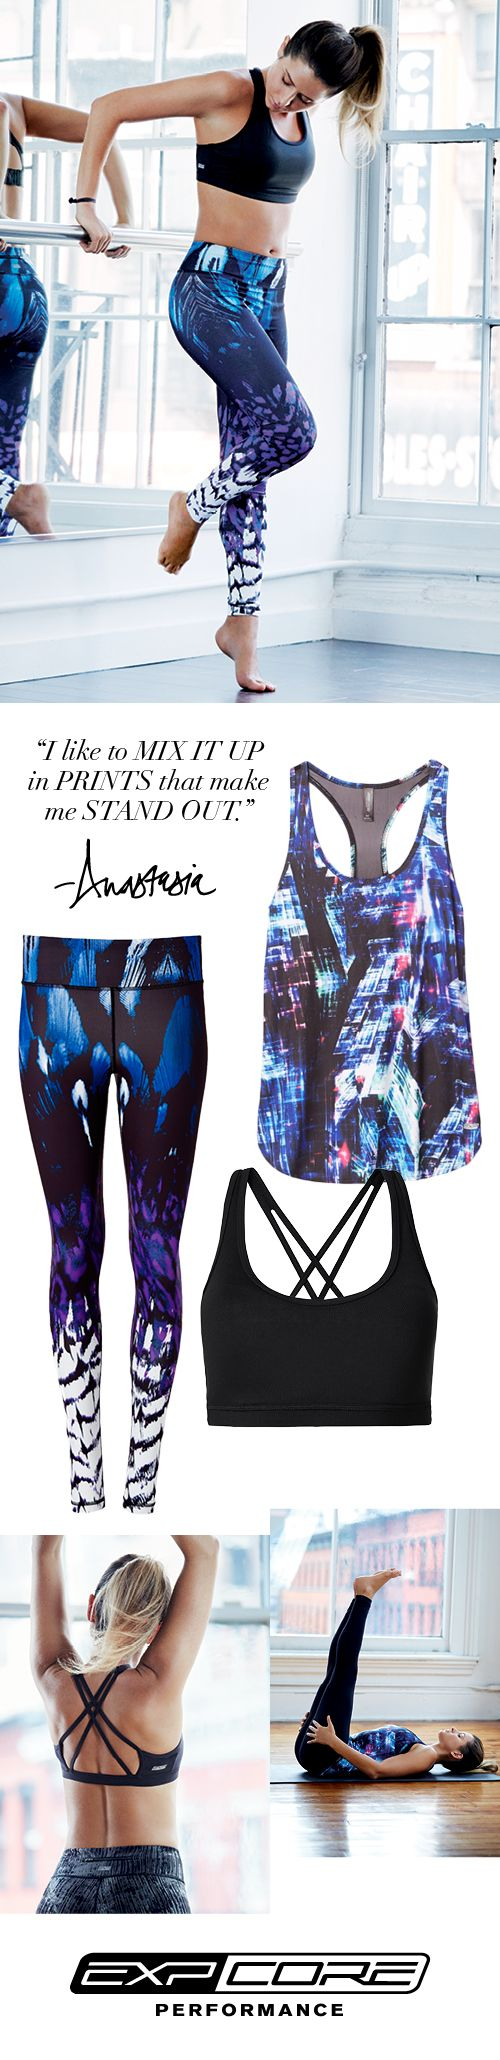 Performance-savvy EXP Core is designed to mix and match so you never have to take the same gym selfie twice. A strappy back sports bra + a city lights print tank + ombre animal print legging = so much yes.